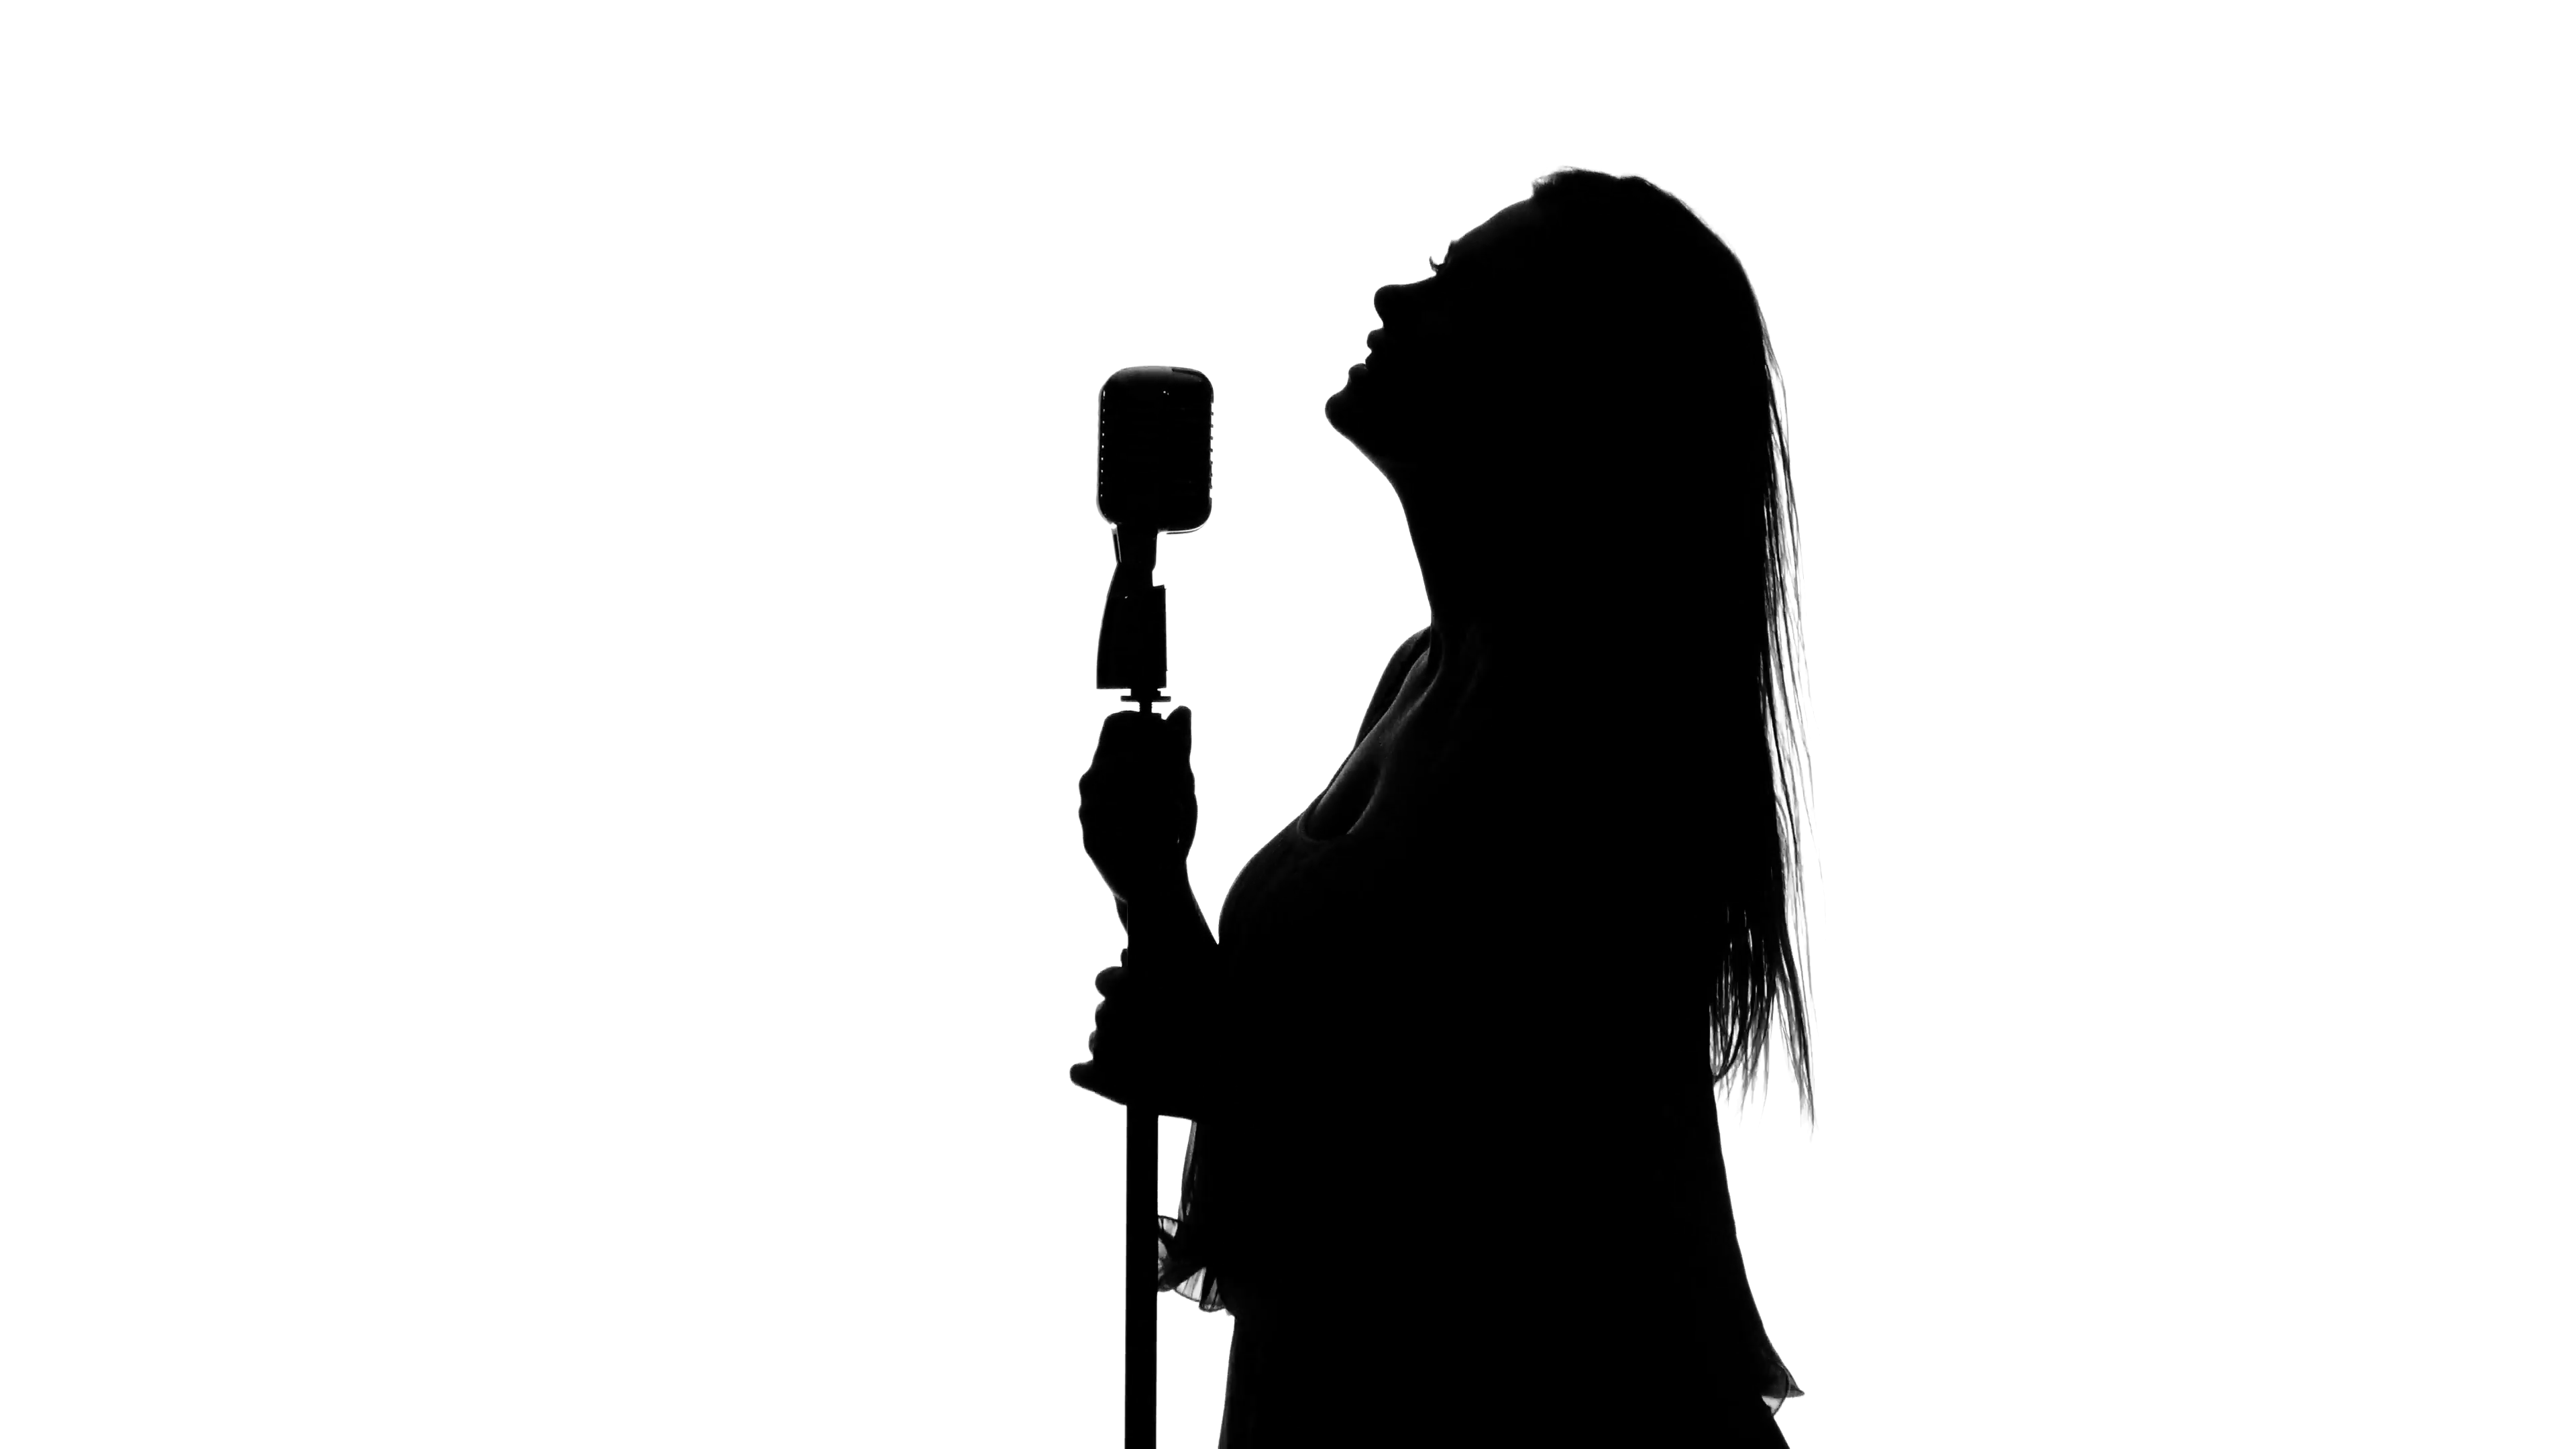 3840x2160 Singer Sings The Song With A Microphone. White. Silhouette Stock